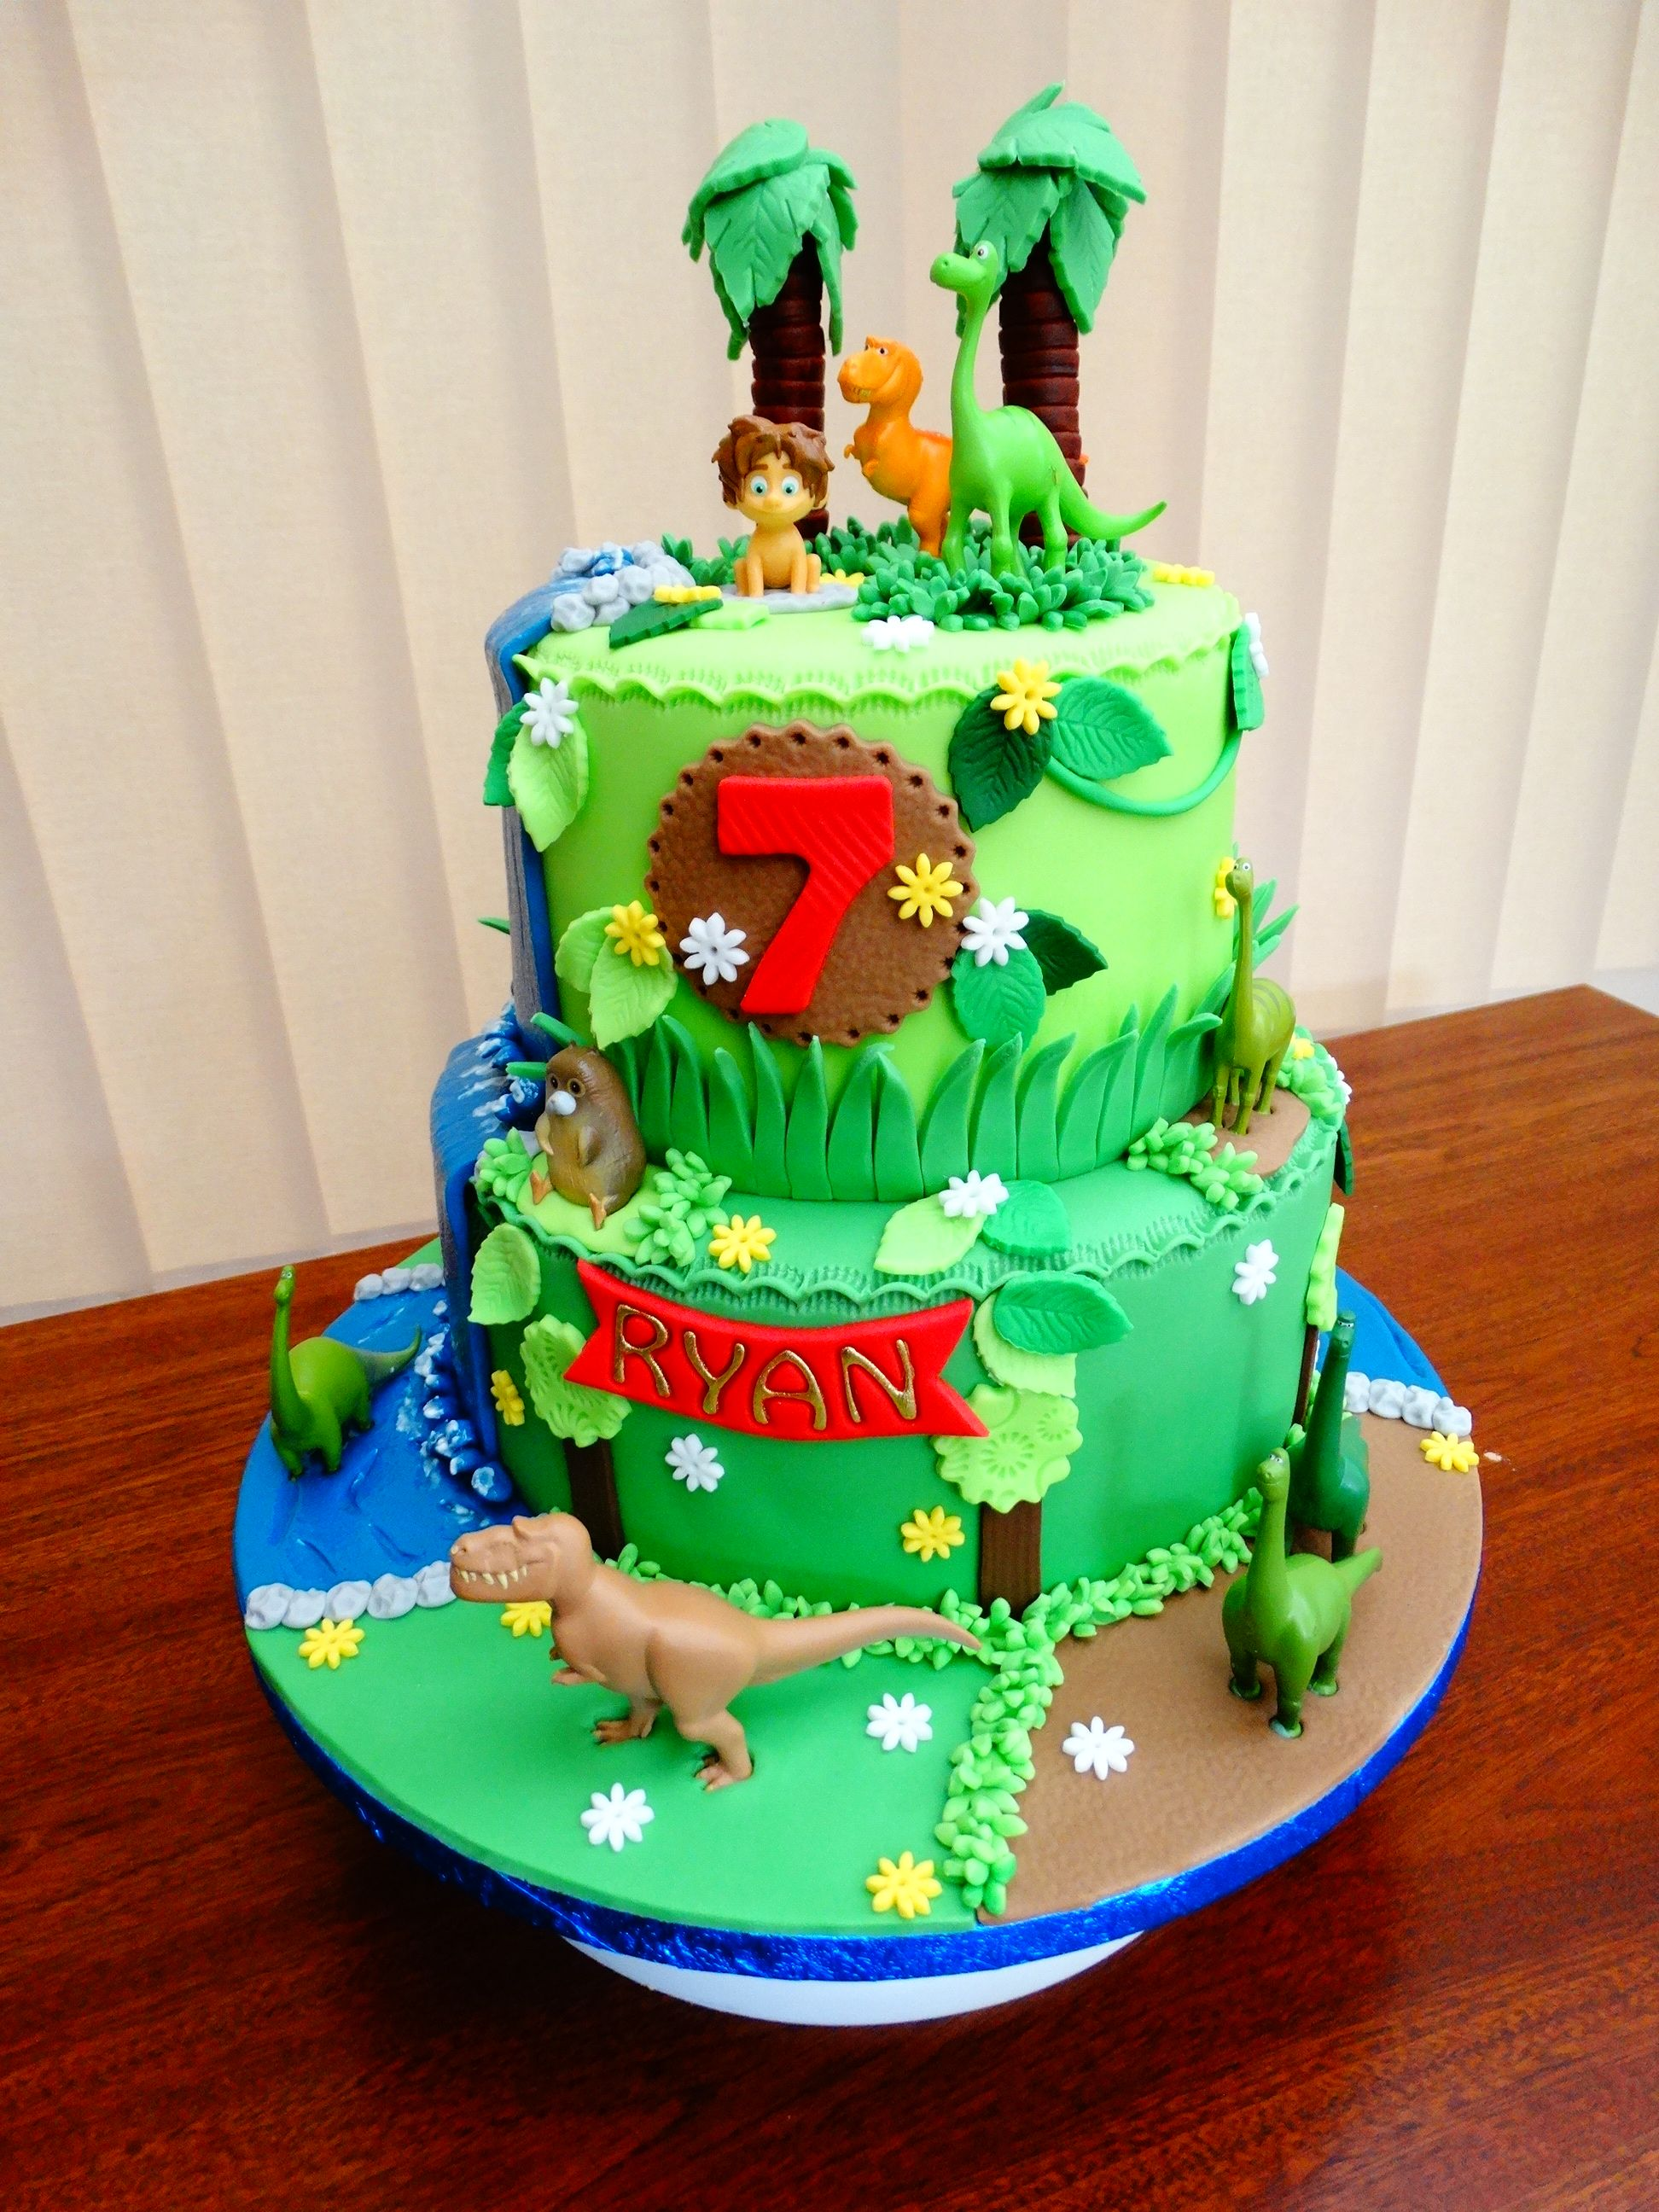 Dinosaur Cake Decorations Uk : The Good Dinosaur 2-Tier Birthday Cake - For all your cake ...